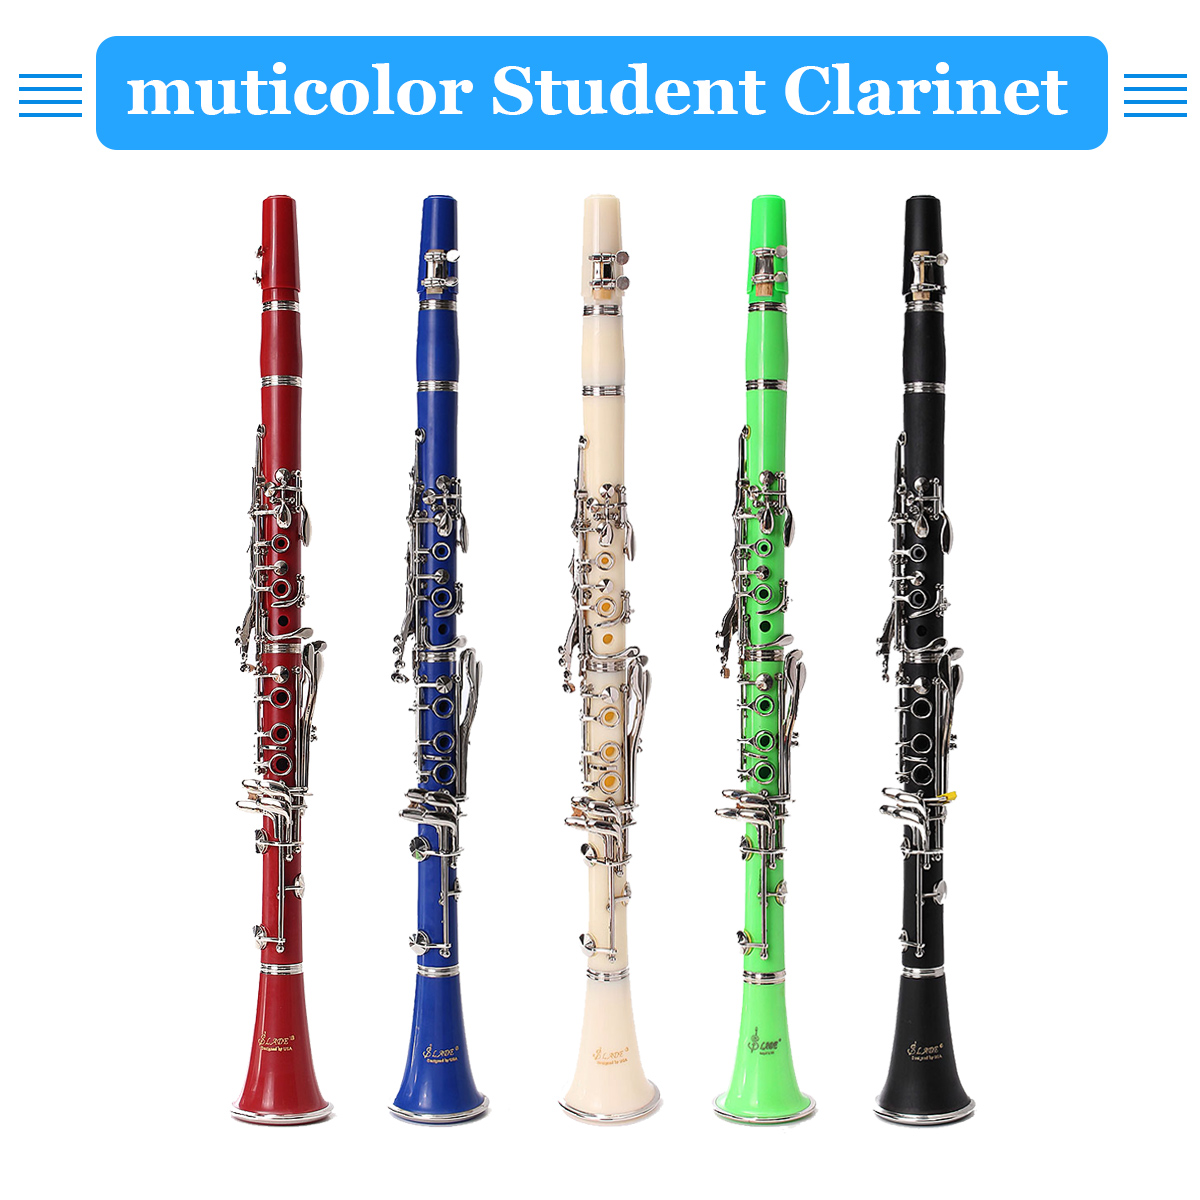 1pcs Muticolor Student Clarinet 17 Keys with Durable ABS Body with Reed Best For Beginner Woodwind Instruments Music Education